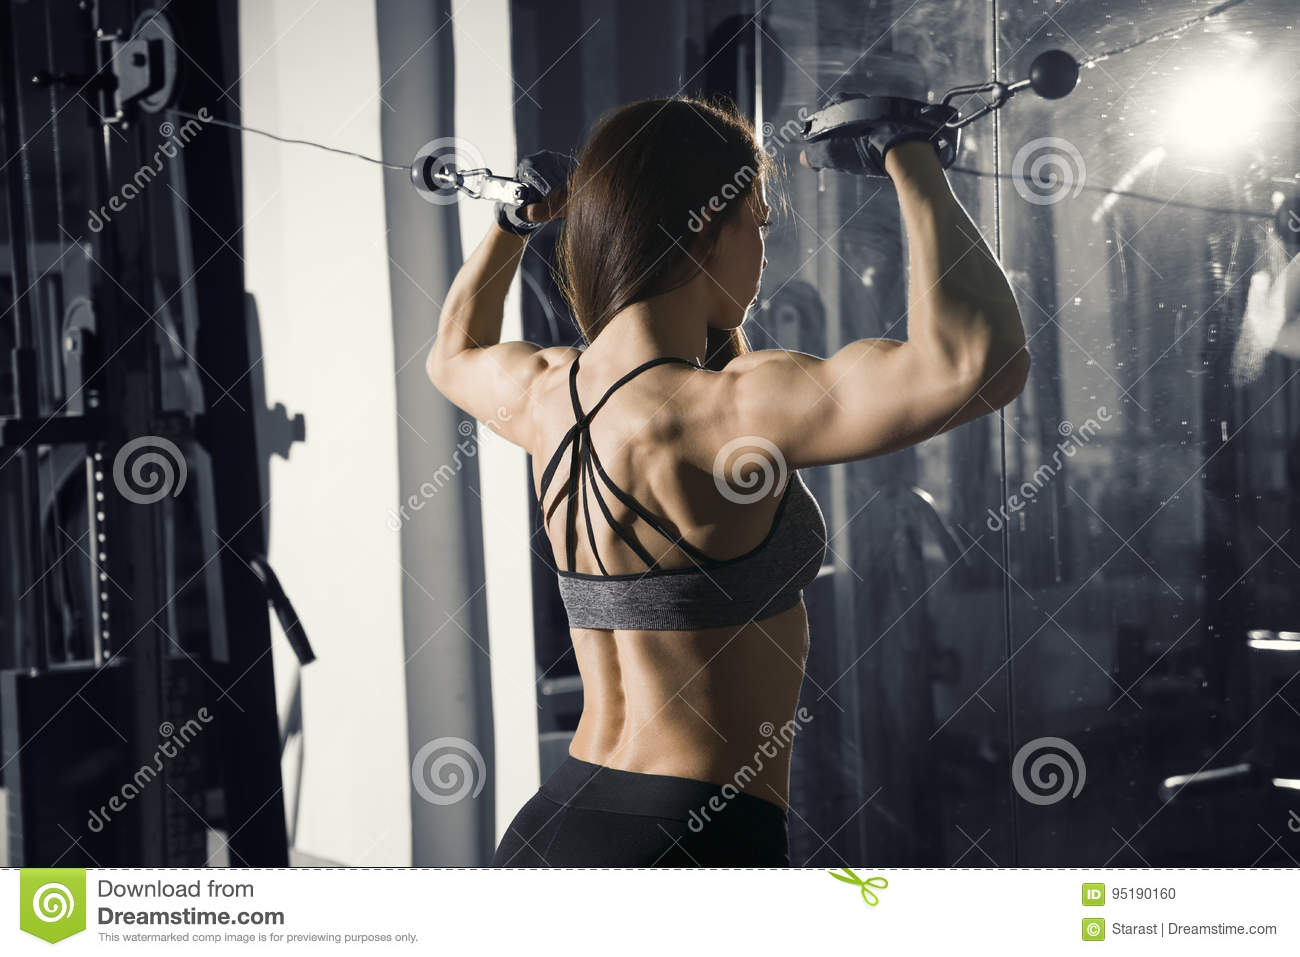 4d5ca23339e11 Young fitness woman workout with training machine in the gym, perfect  muscular body